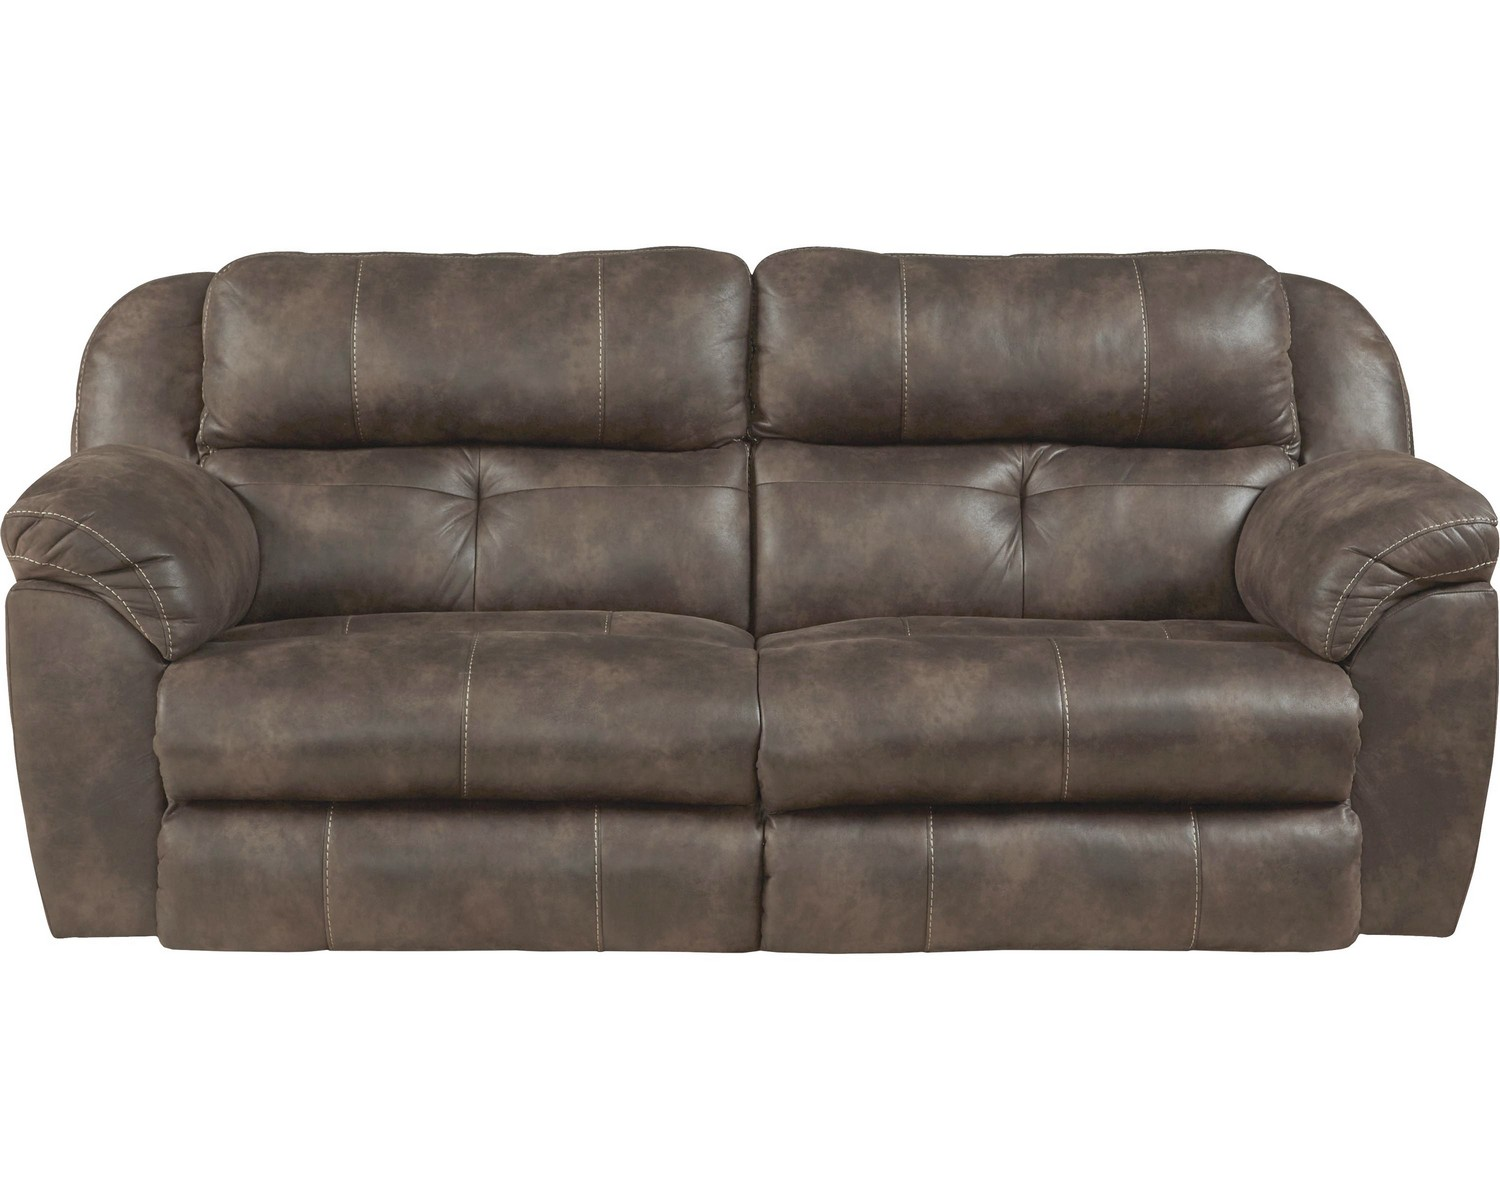 Catnapper Ferrington Power Headrest Power Lay Flat Reclining Sofa Dusk Cn 61891 Dusk At